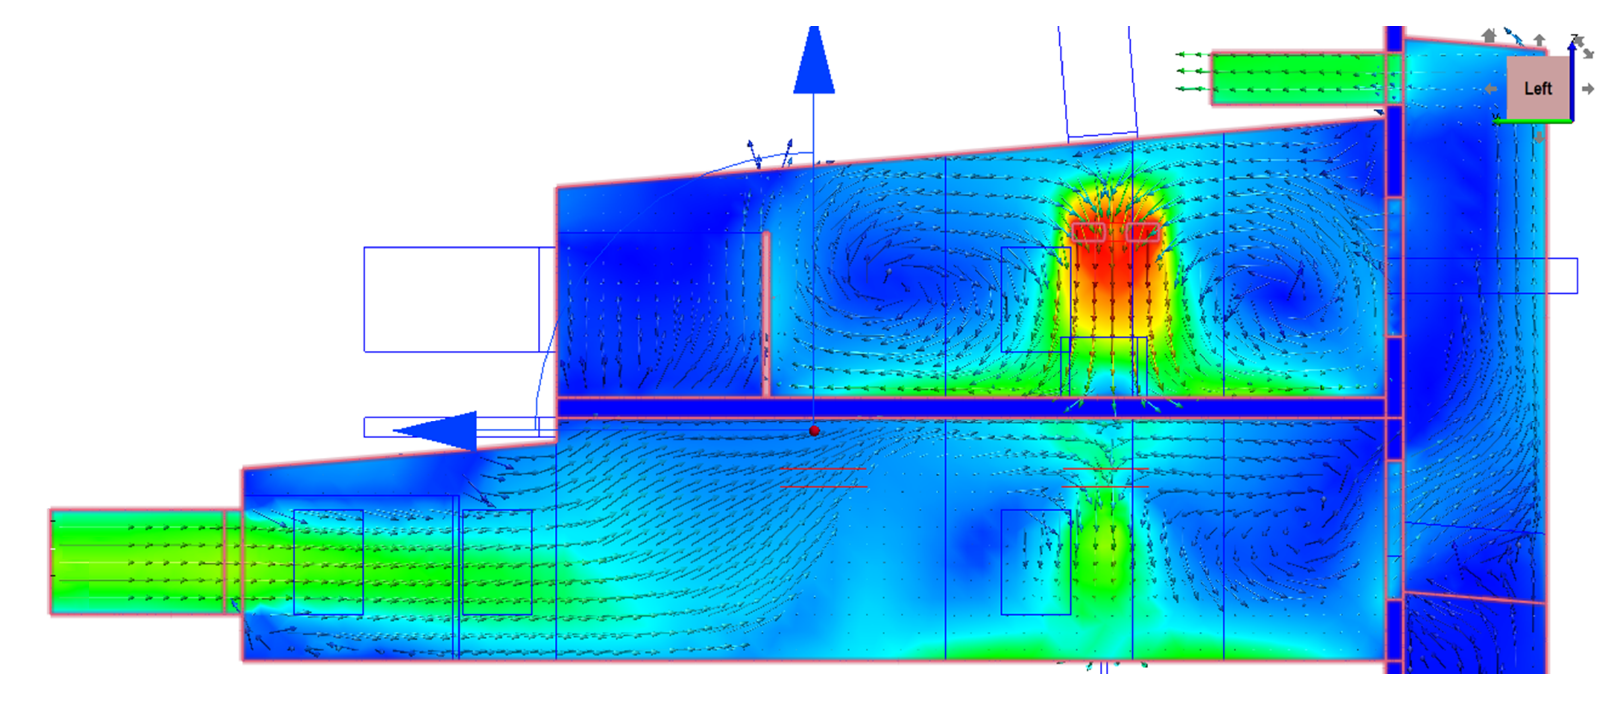 Air flow velocity traces were made throughout the building via section-cuts